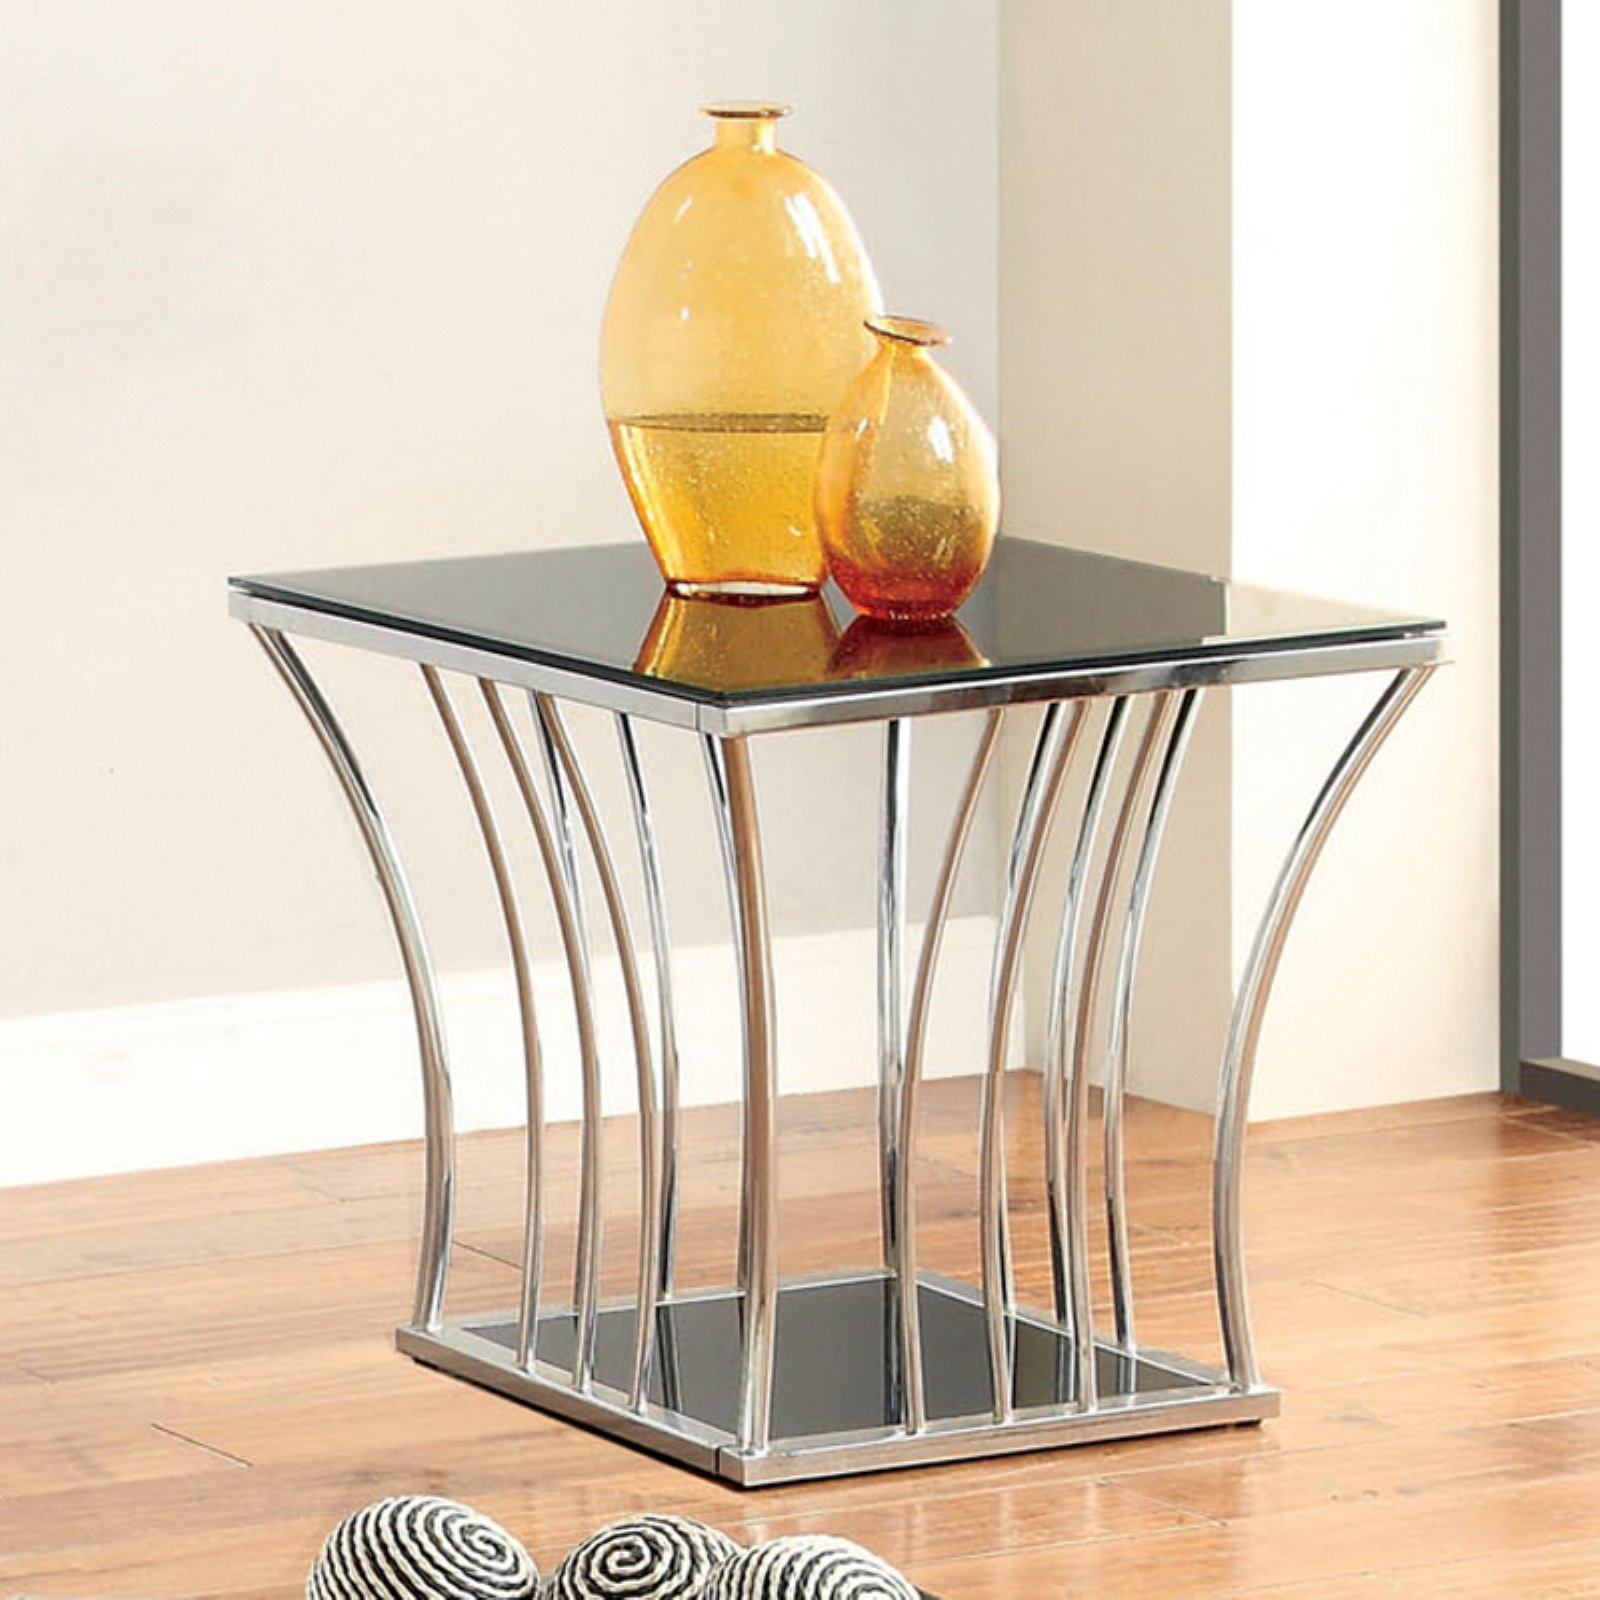 Furniture of America Arsoli Beveled Glass Top End Table - Chrome / Black